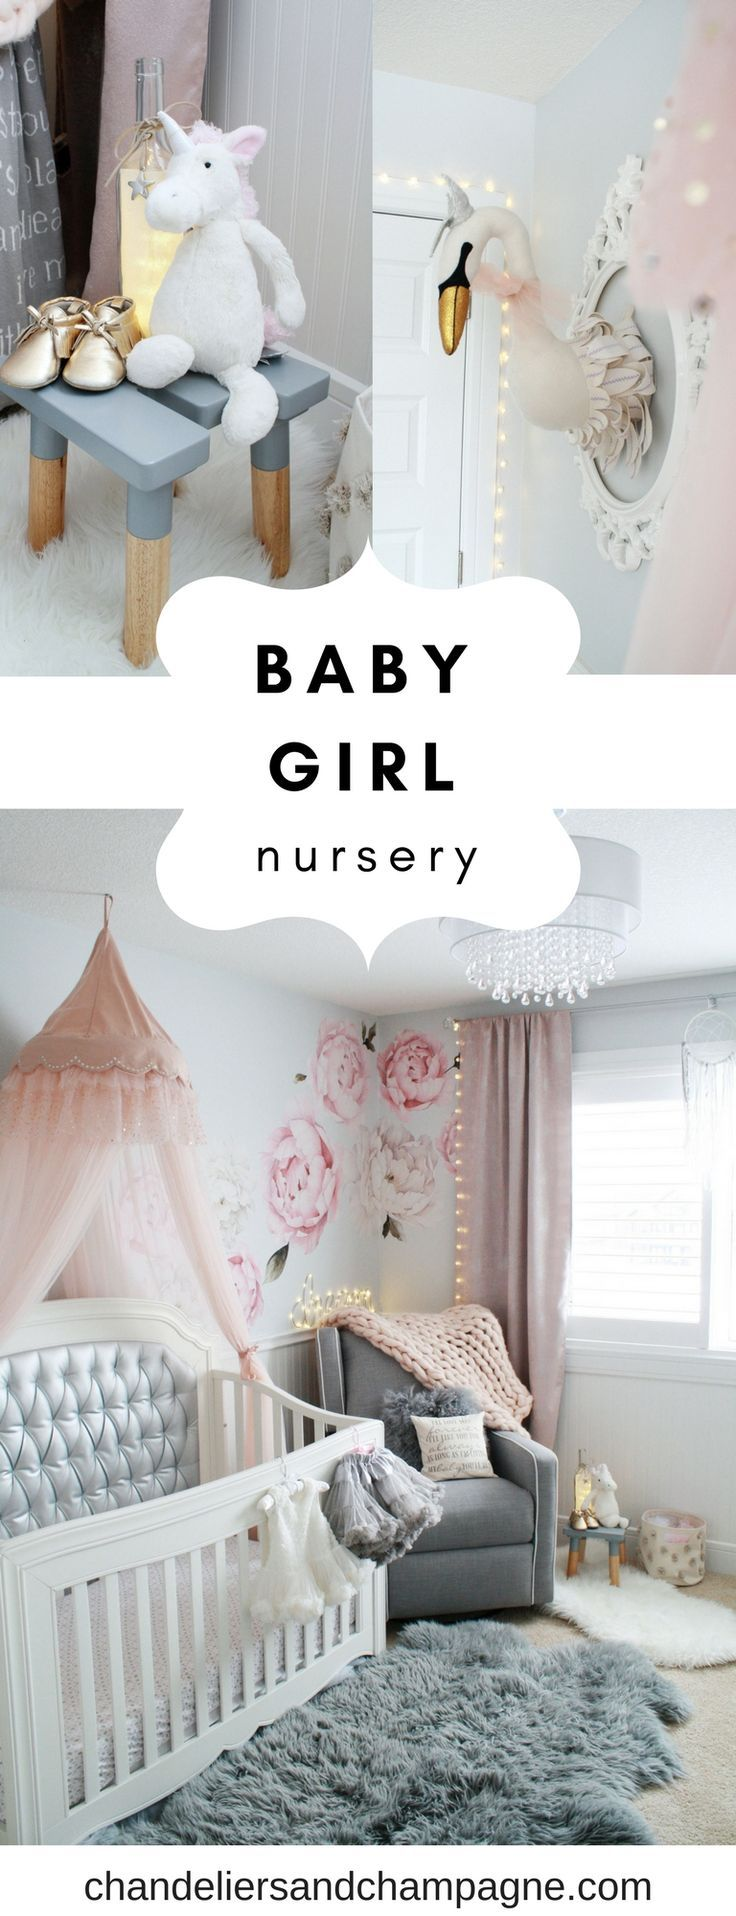 Glamorous pink and gray nursery : pink tulle canopy - memphite.com